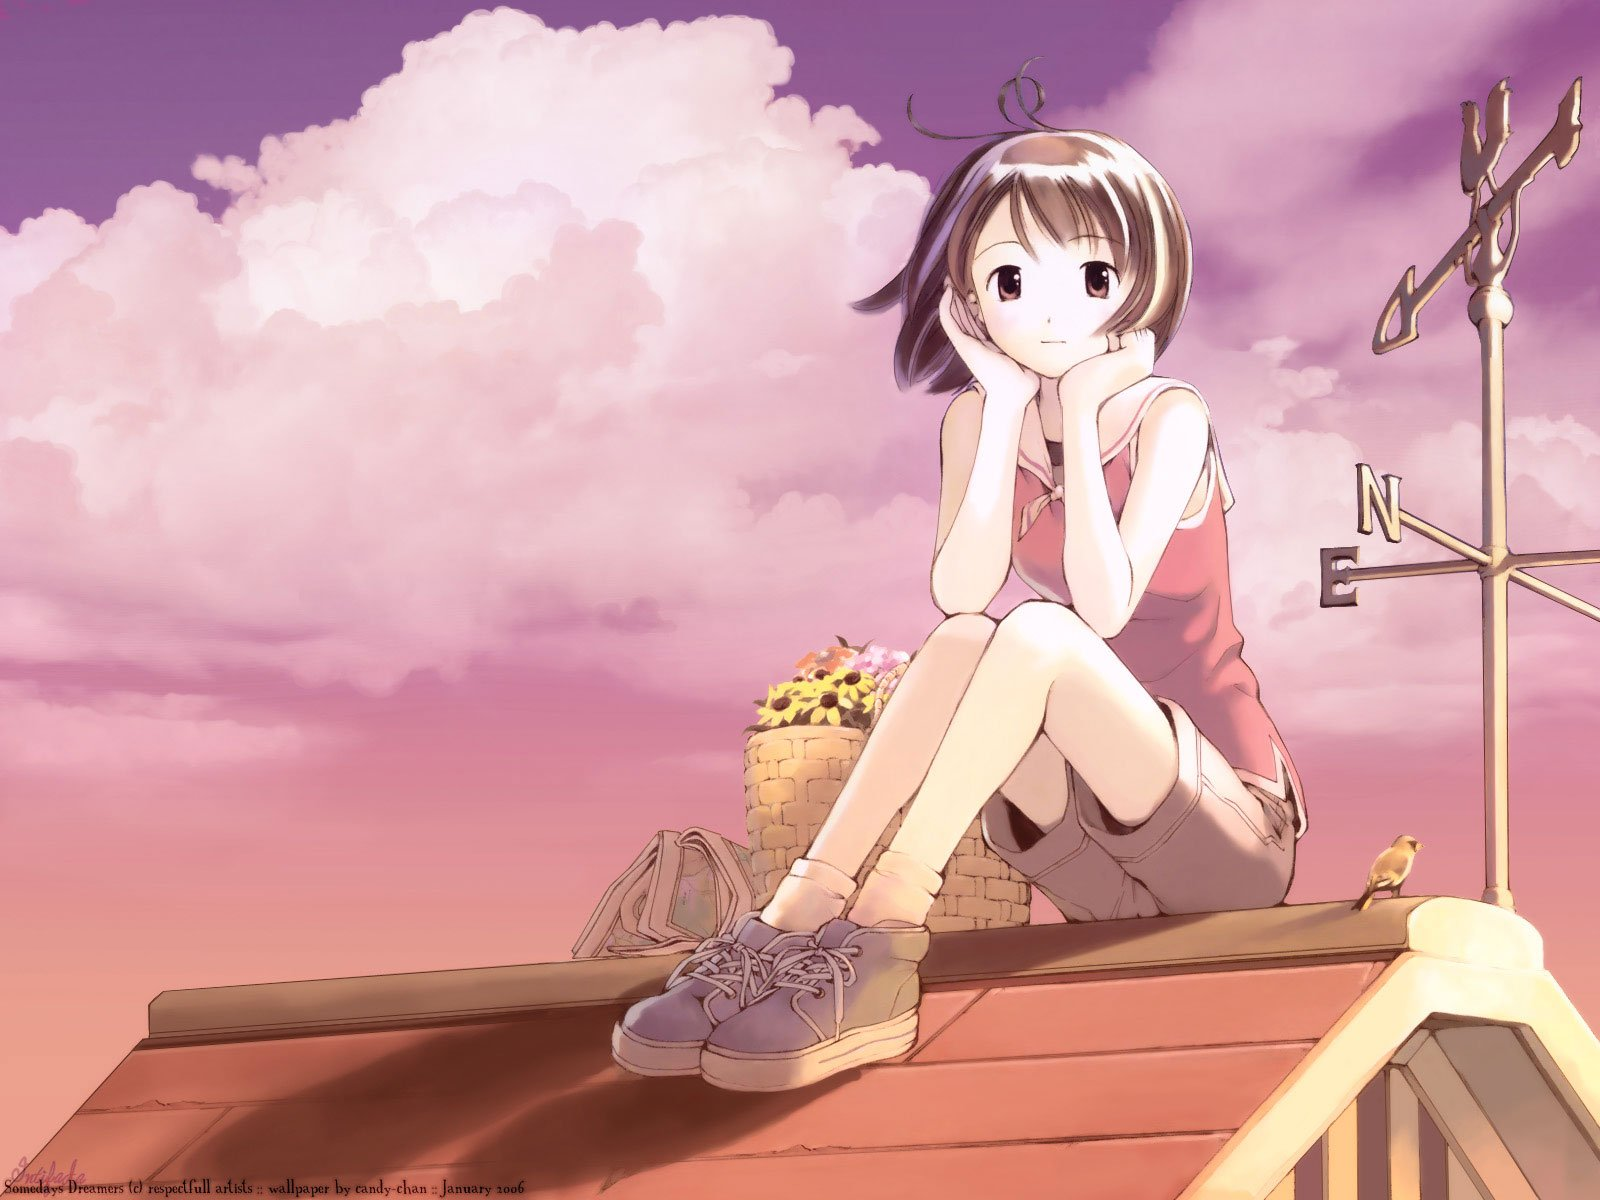 Cute Wallpapers Tumbkr Anime Girl Alone Cute Sky Clouds Wallpaper 1600x1200